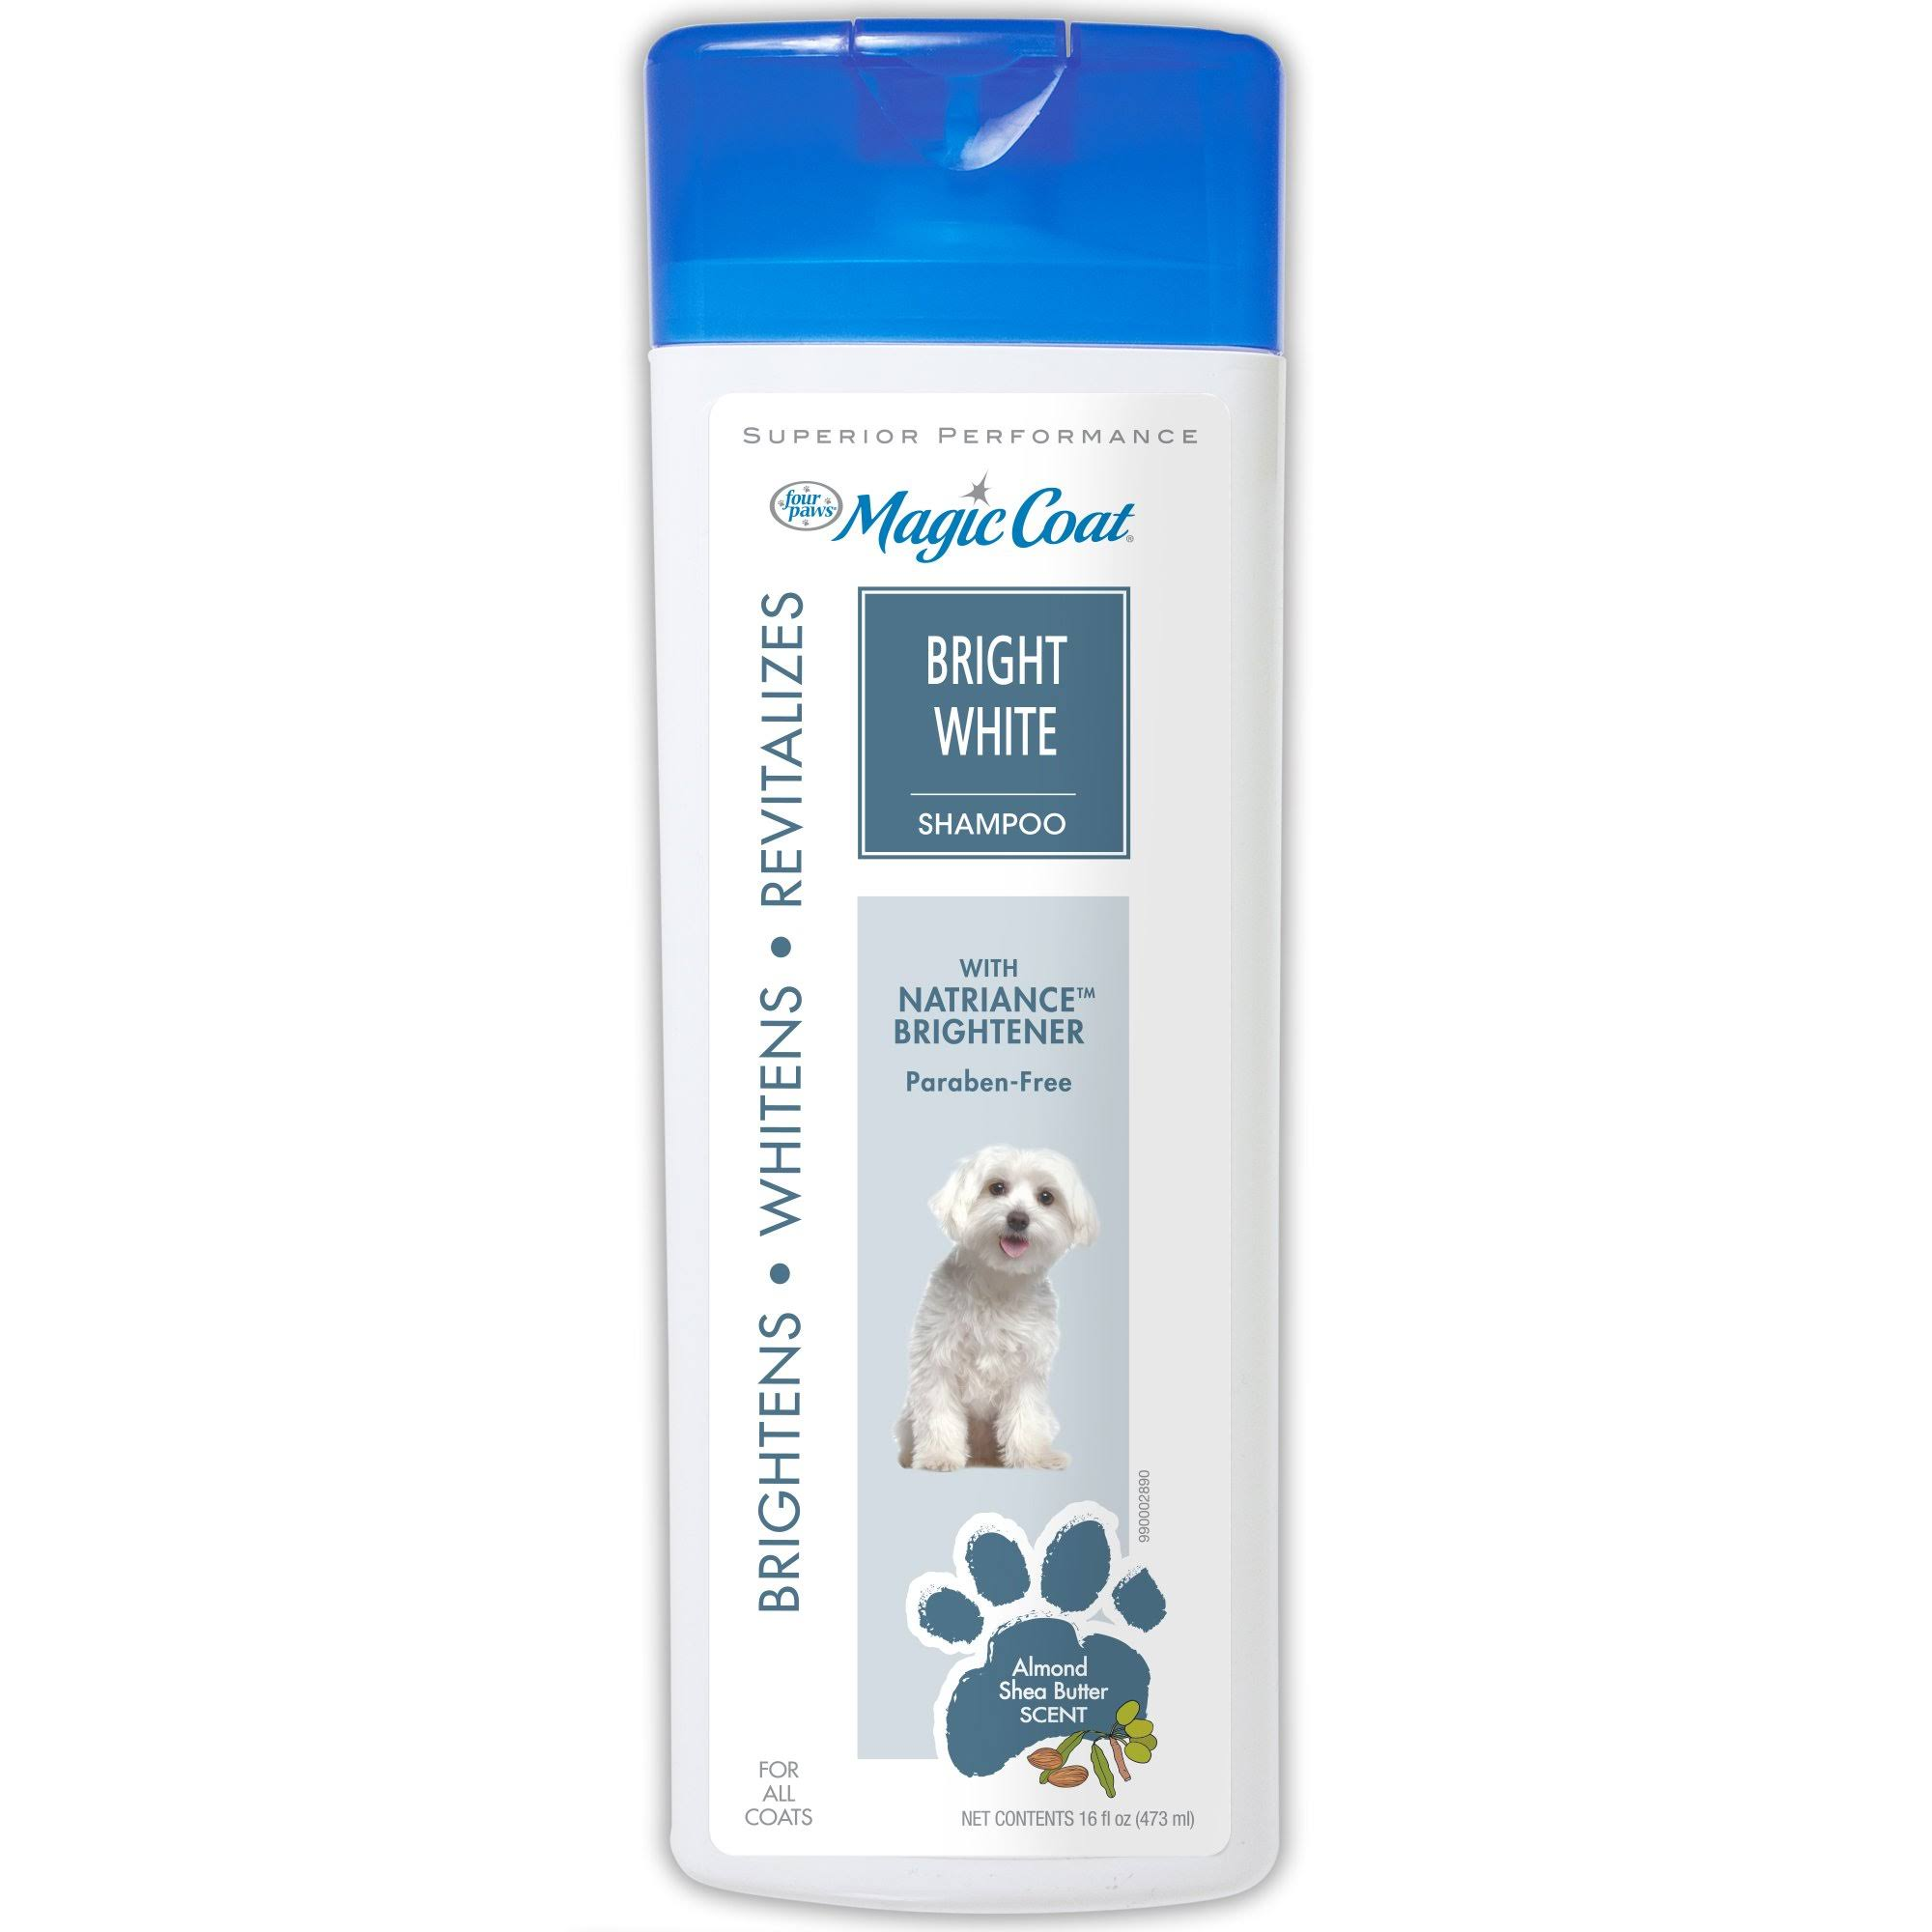 Four Paws Magic Coat Dog Grooming Shampoo - Bright White